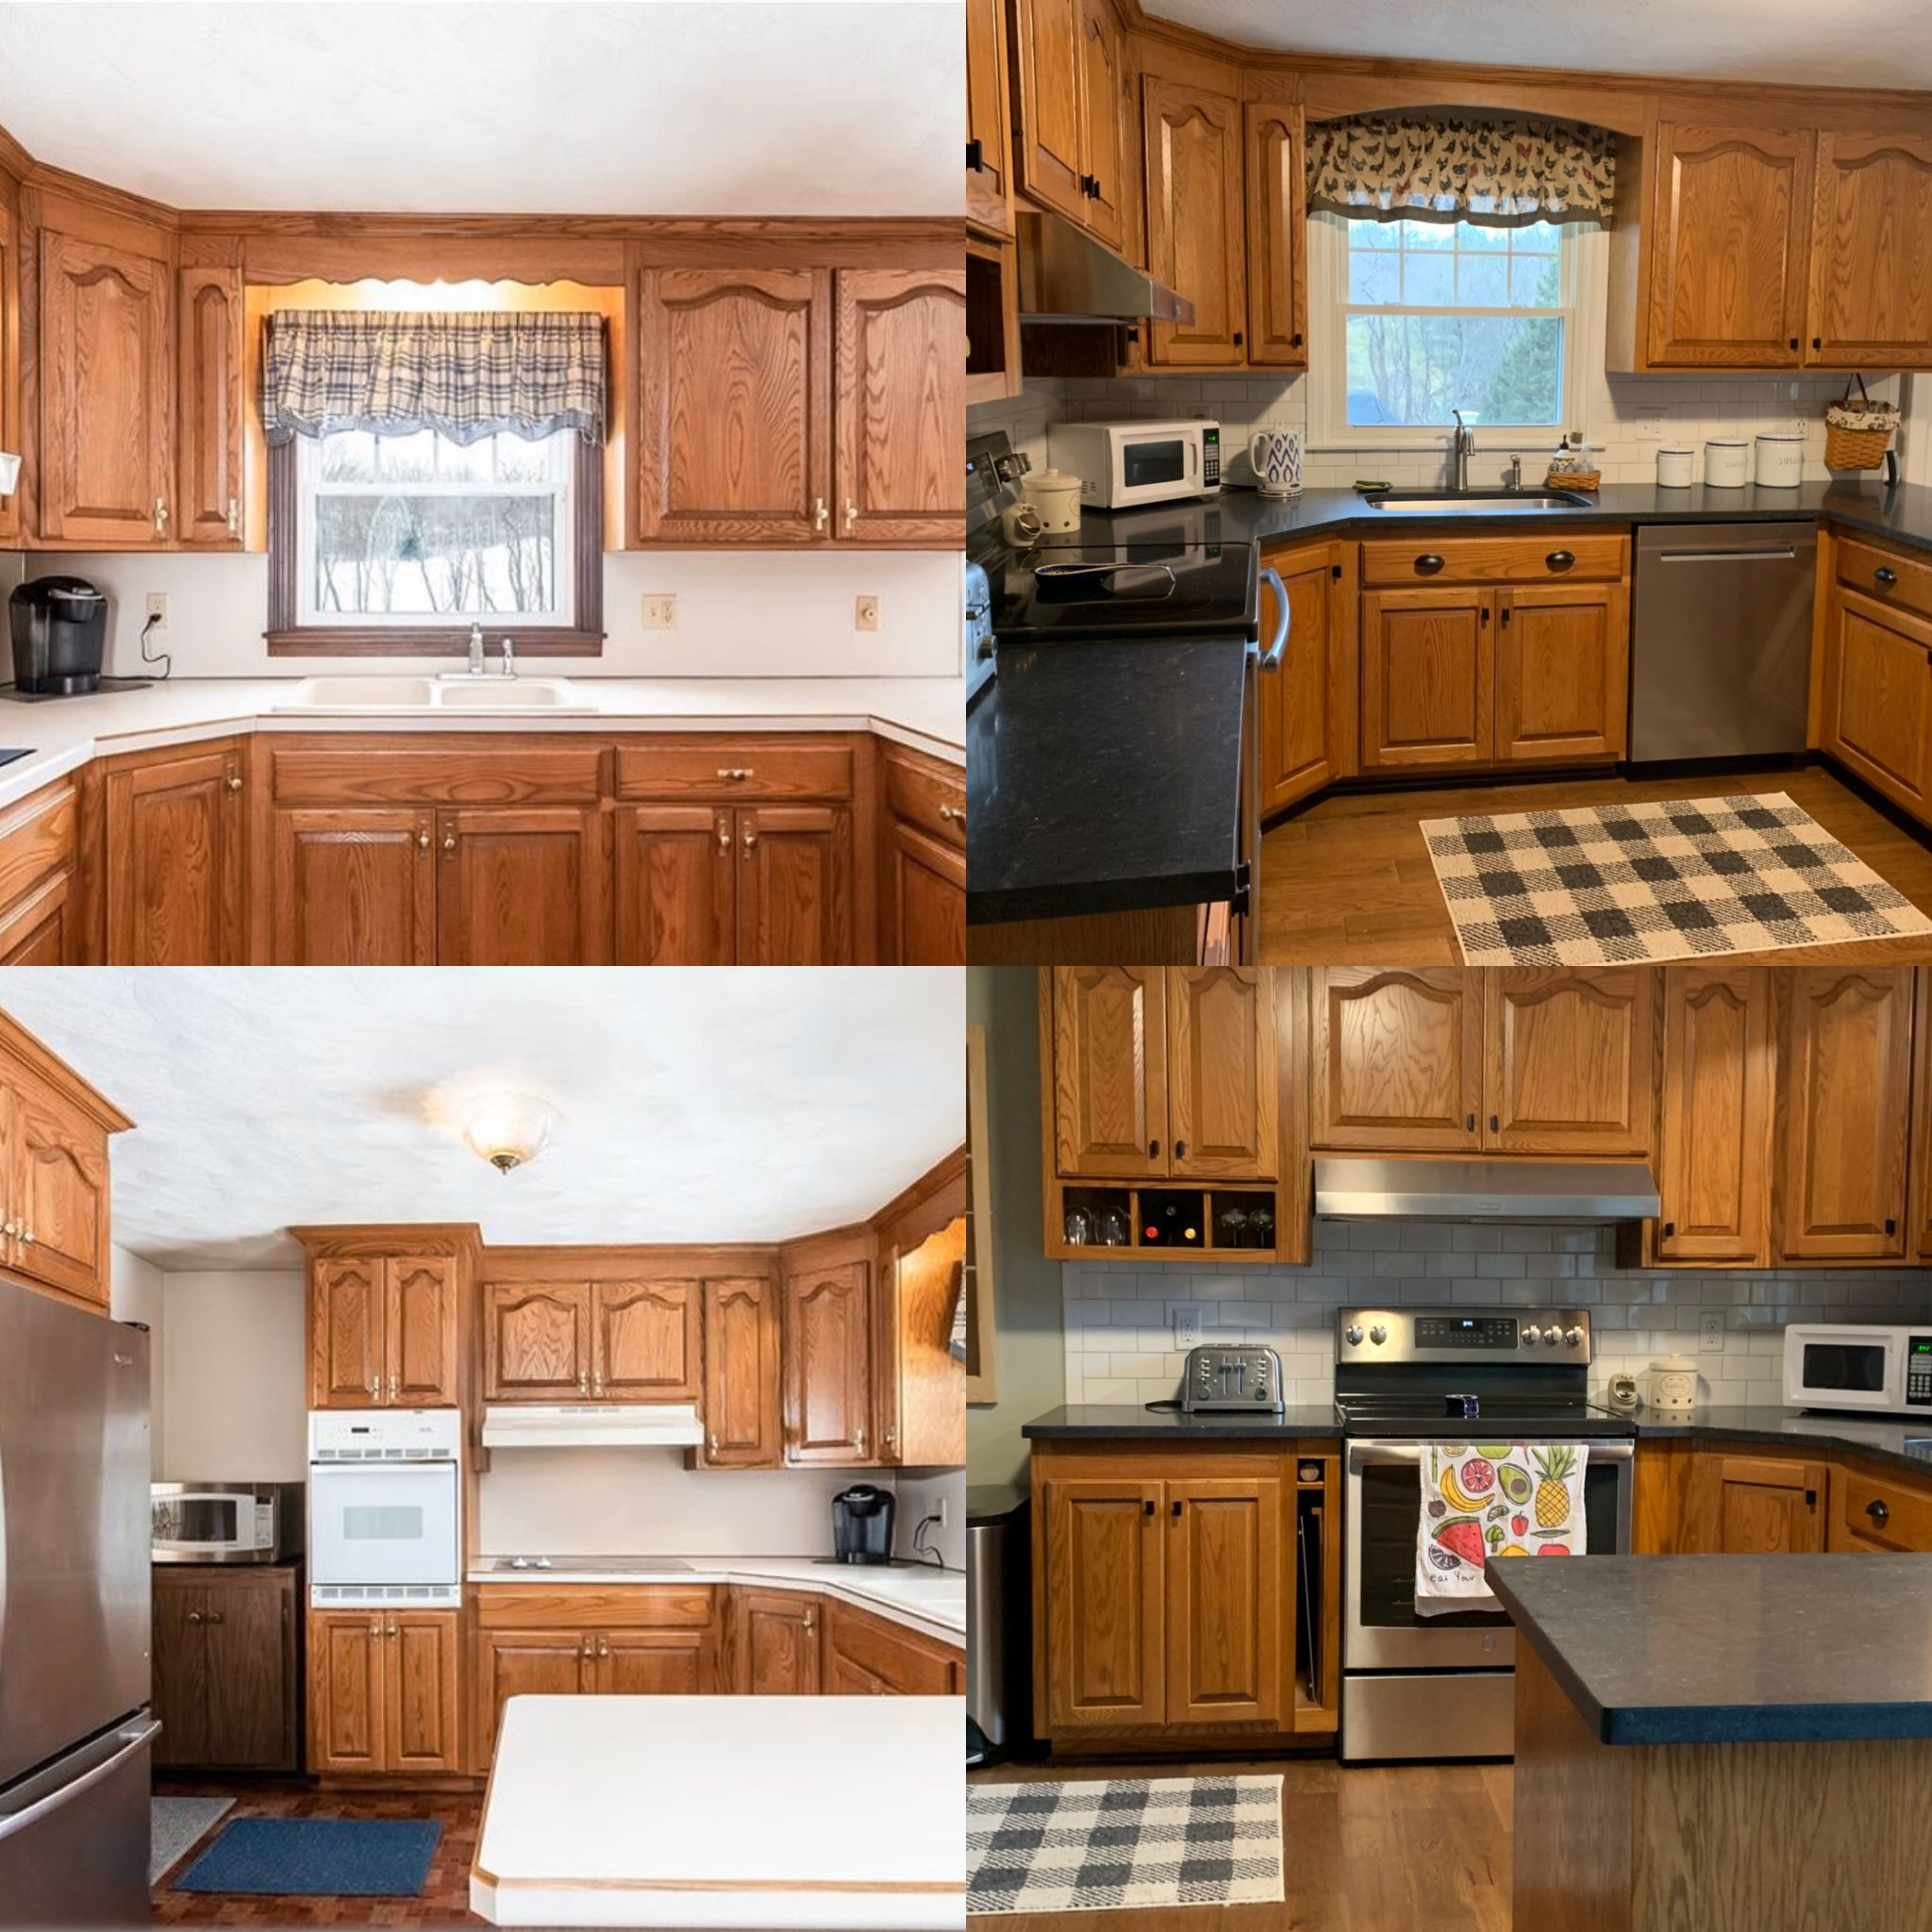 1990 Golden Oak Cabinets Updated Without Painting Scrolled Trim Over Thesink Changed To An Arch Brass Hardware C In 2020 Update Cabinets Oak Cabinets Kitchen Remodel